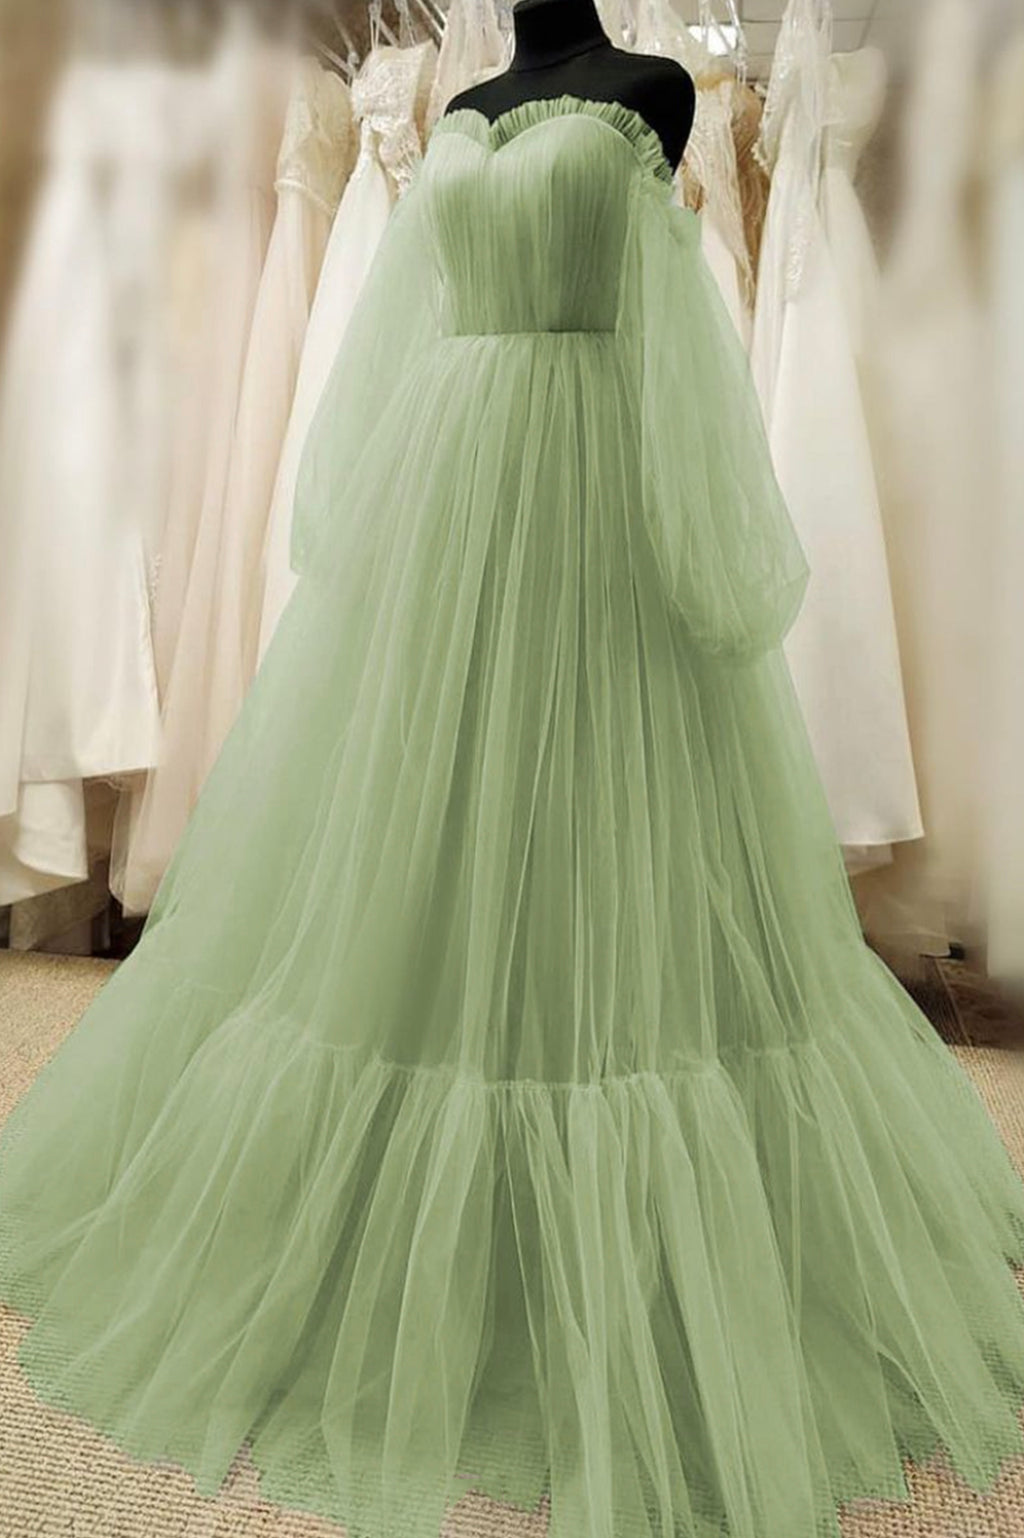 Cute tulle long sleeve prom dress cute evening dress